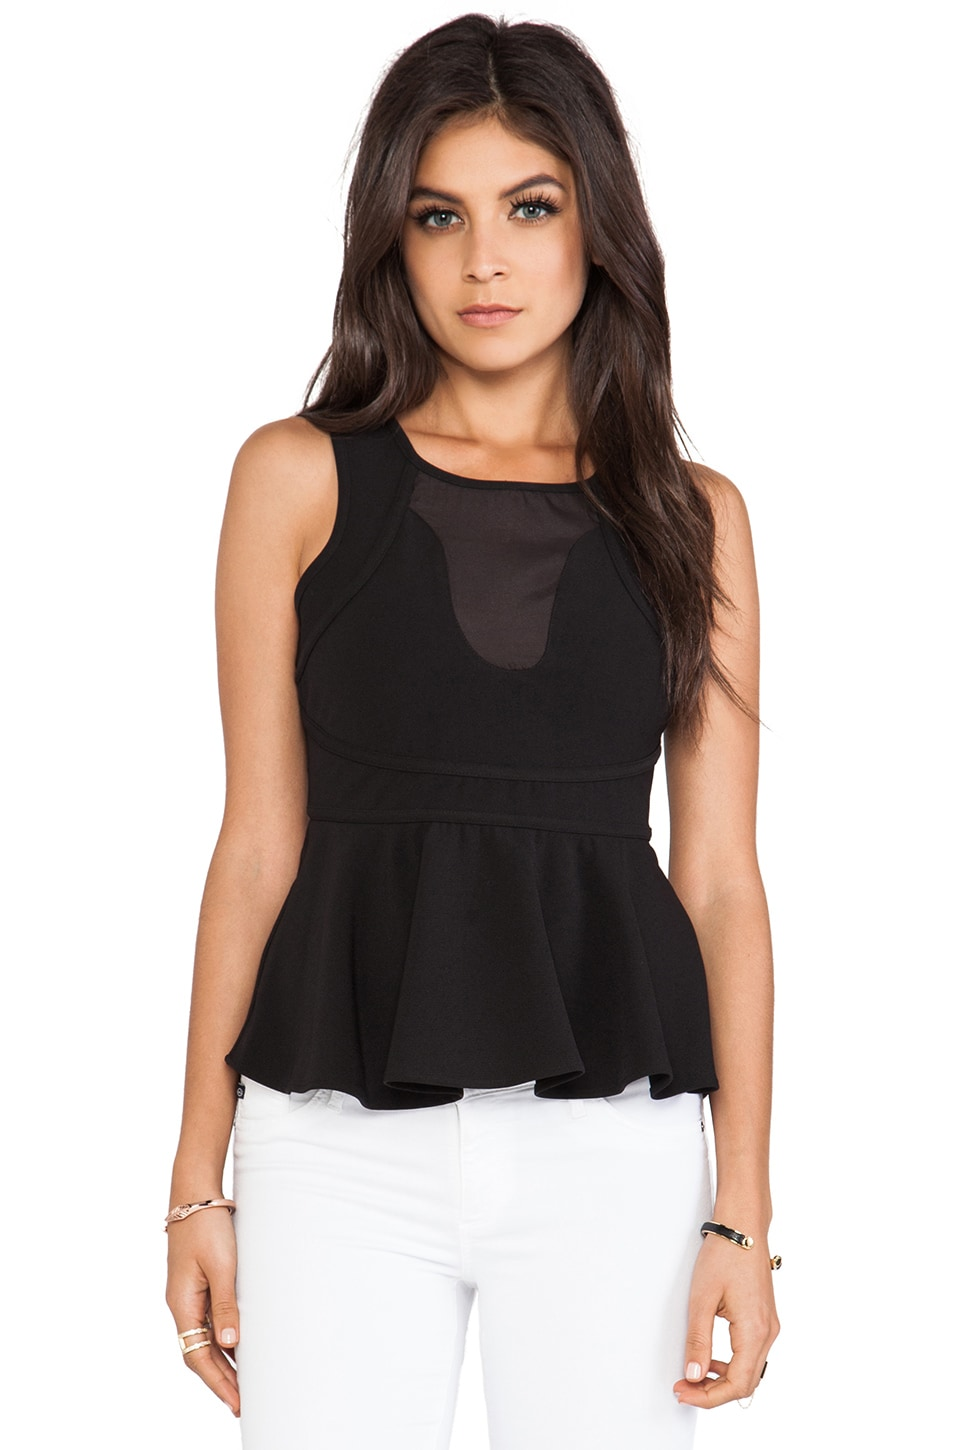 Wish Magnatize Peplum Top in Black